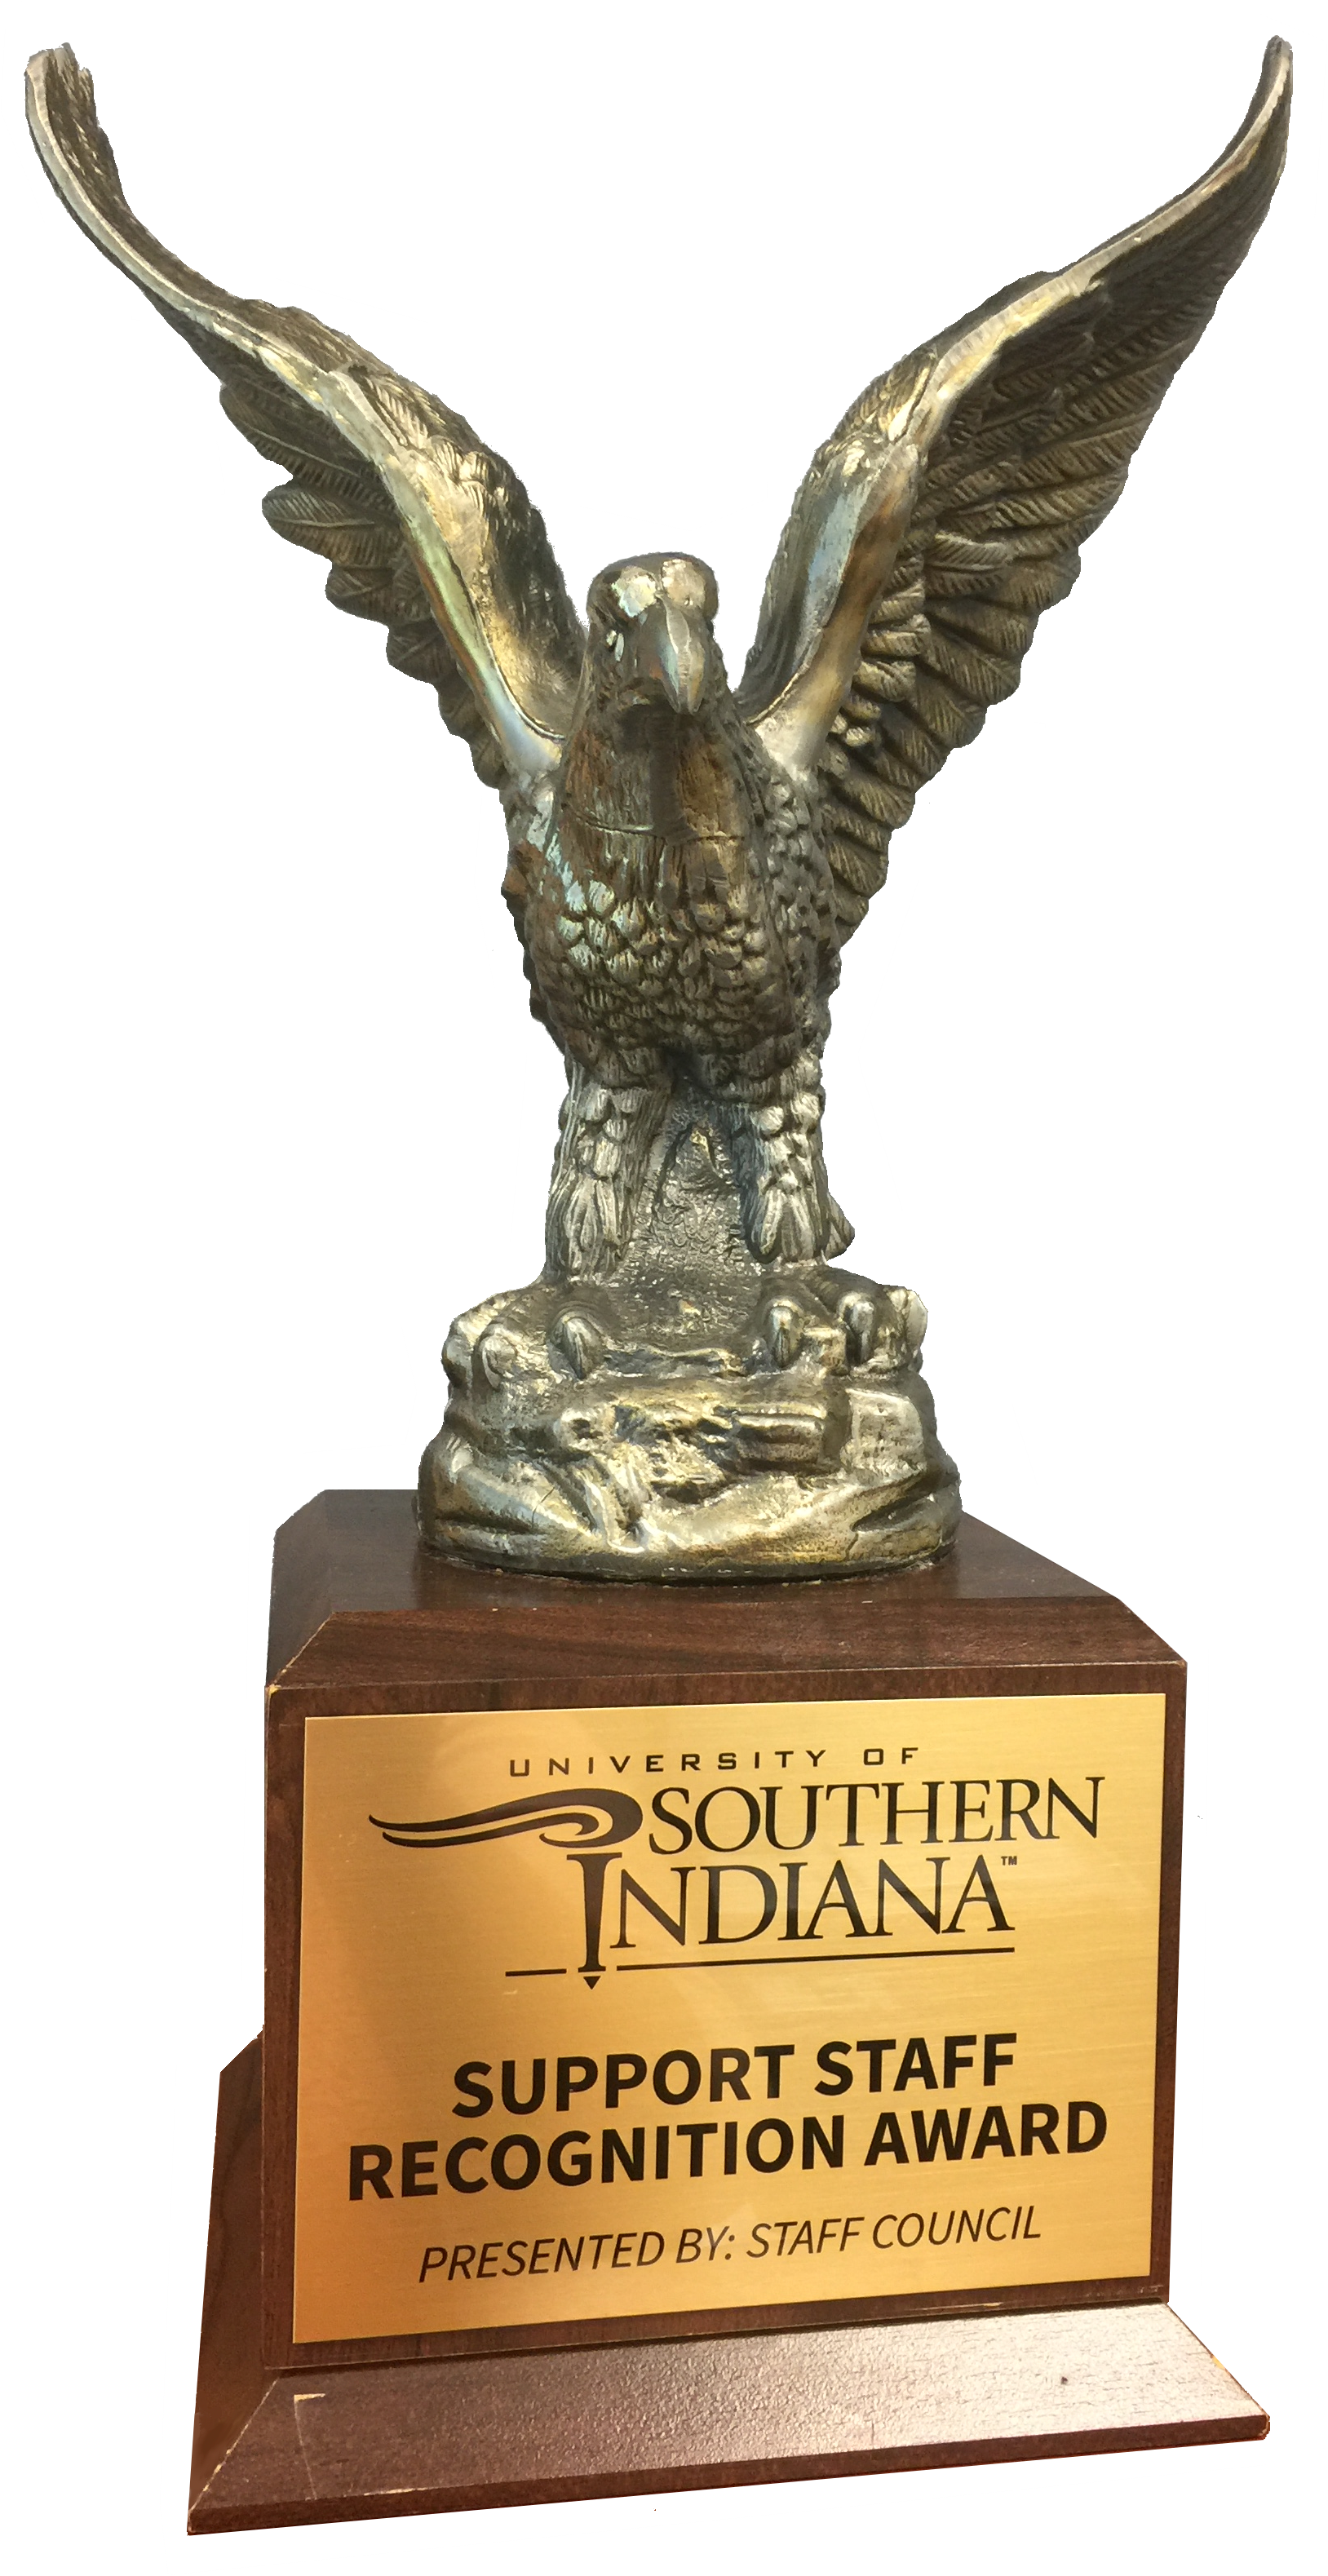 Support Staff Recognition Award trophy